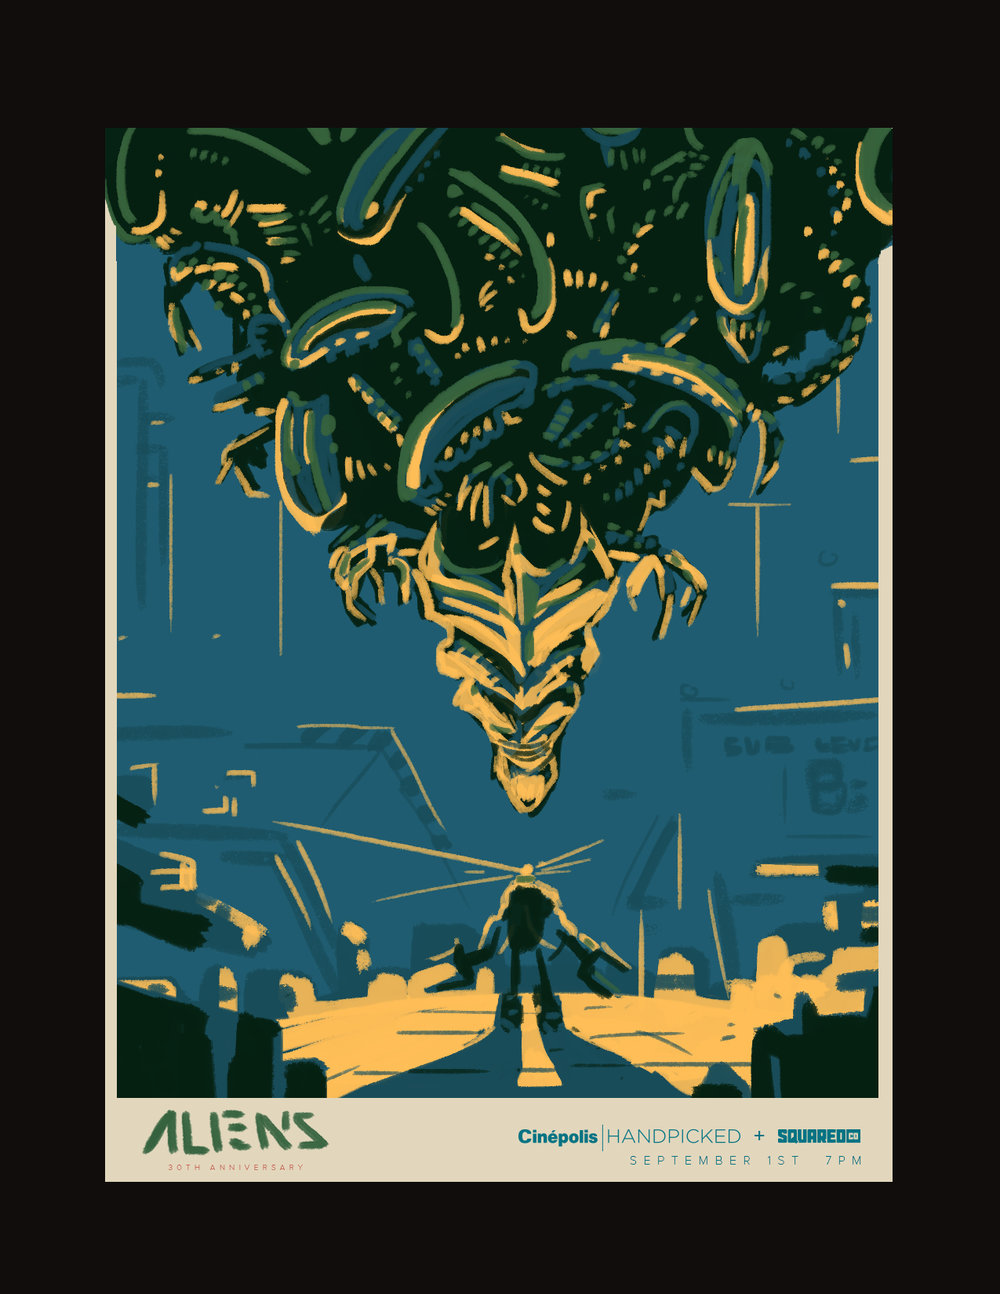 ALIENS_Roughs-01-ColorBlock-D.jpg